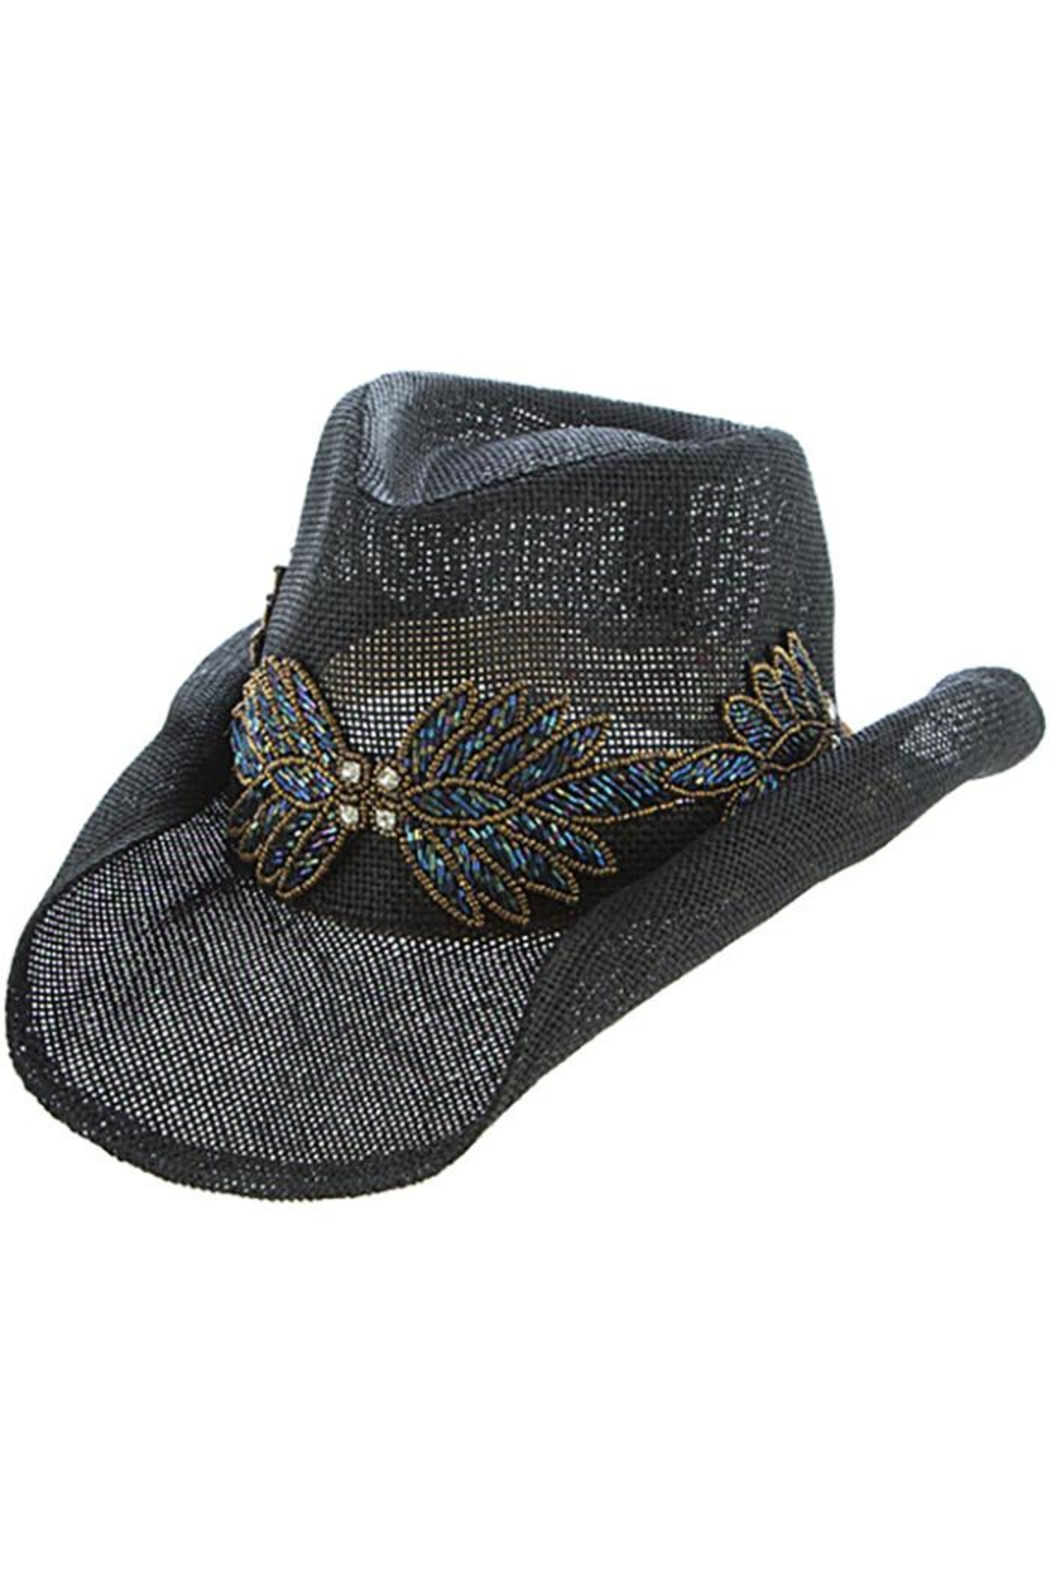 The Hatter Company Beaded Leaf-Accent Hat - Main Image